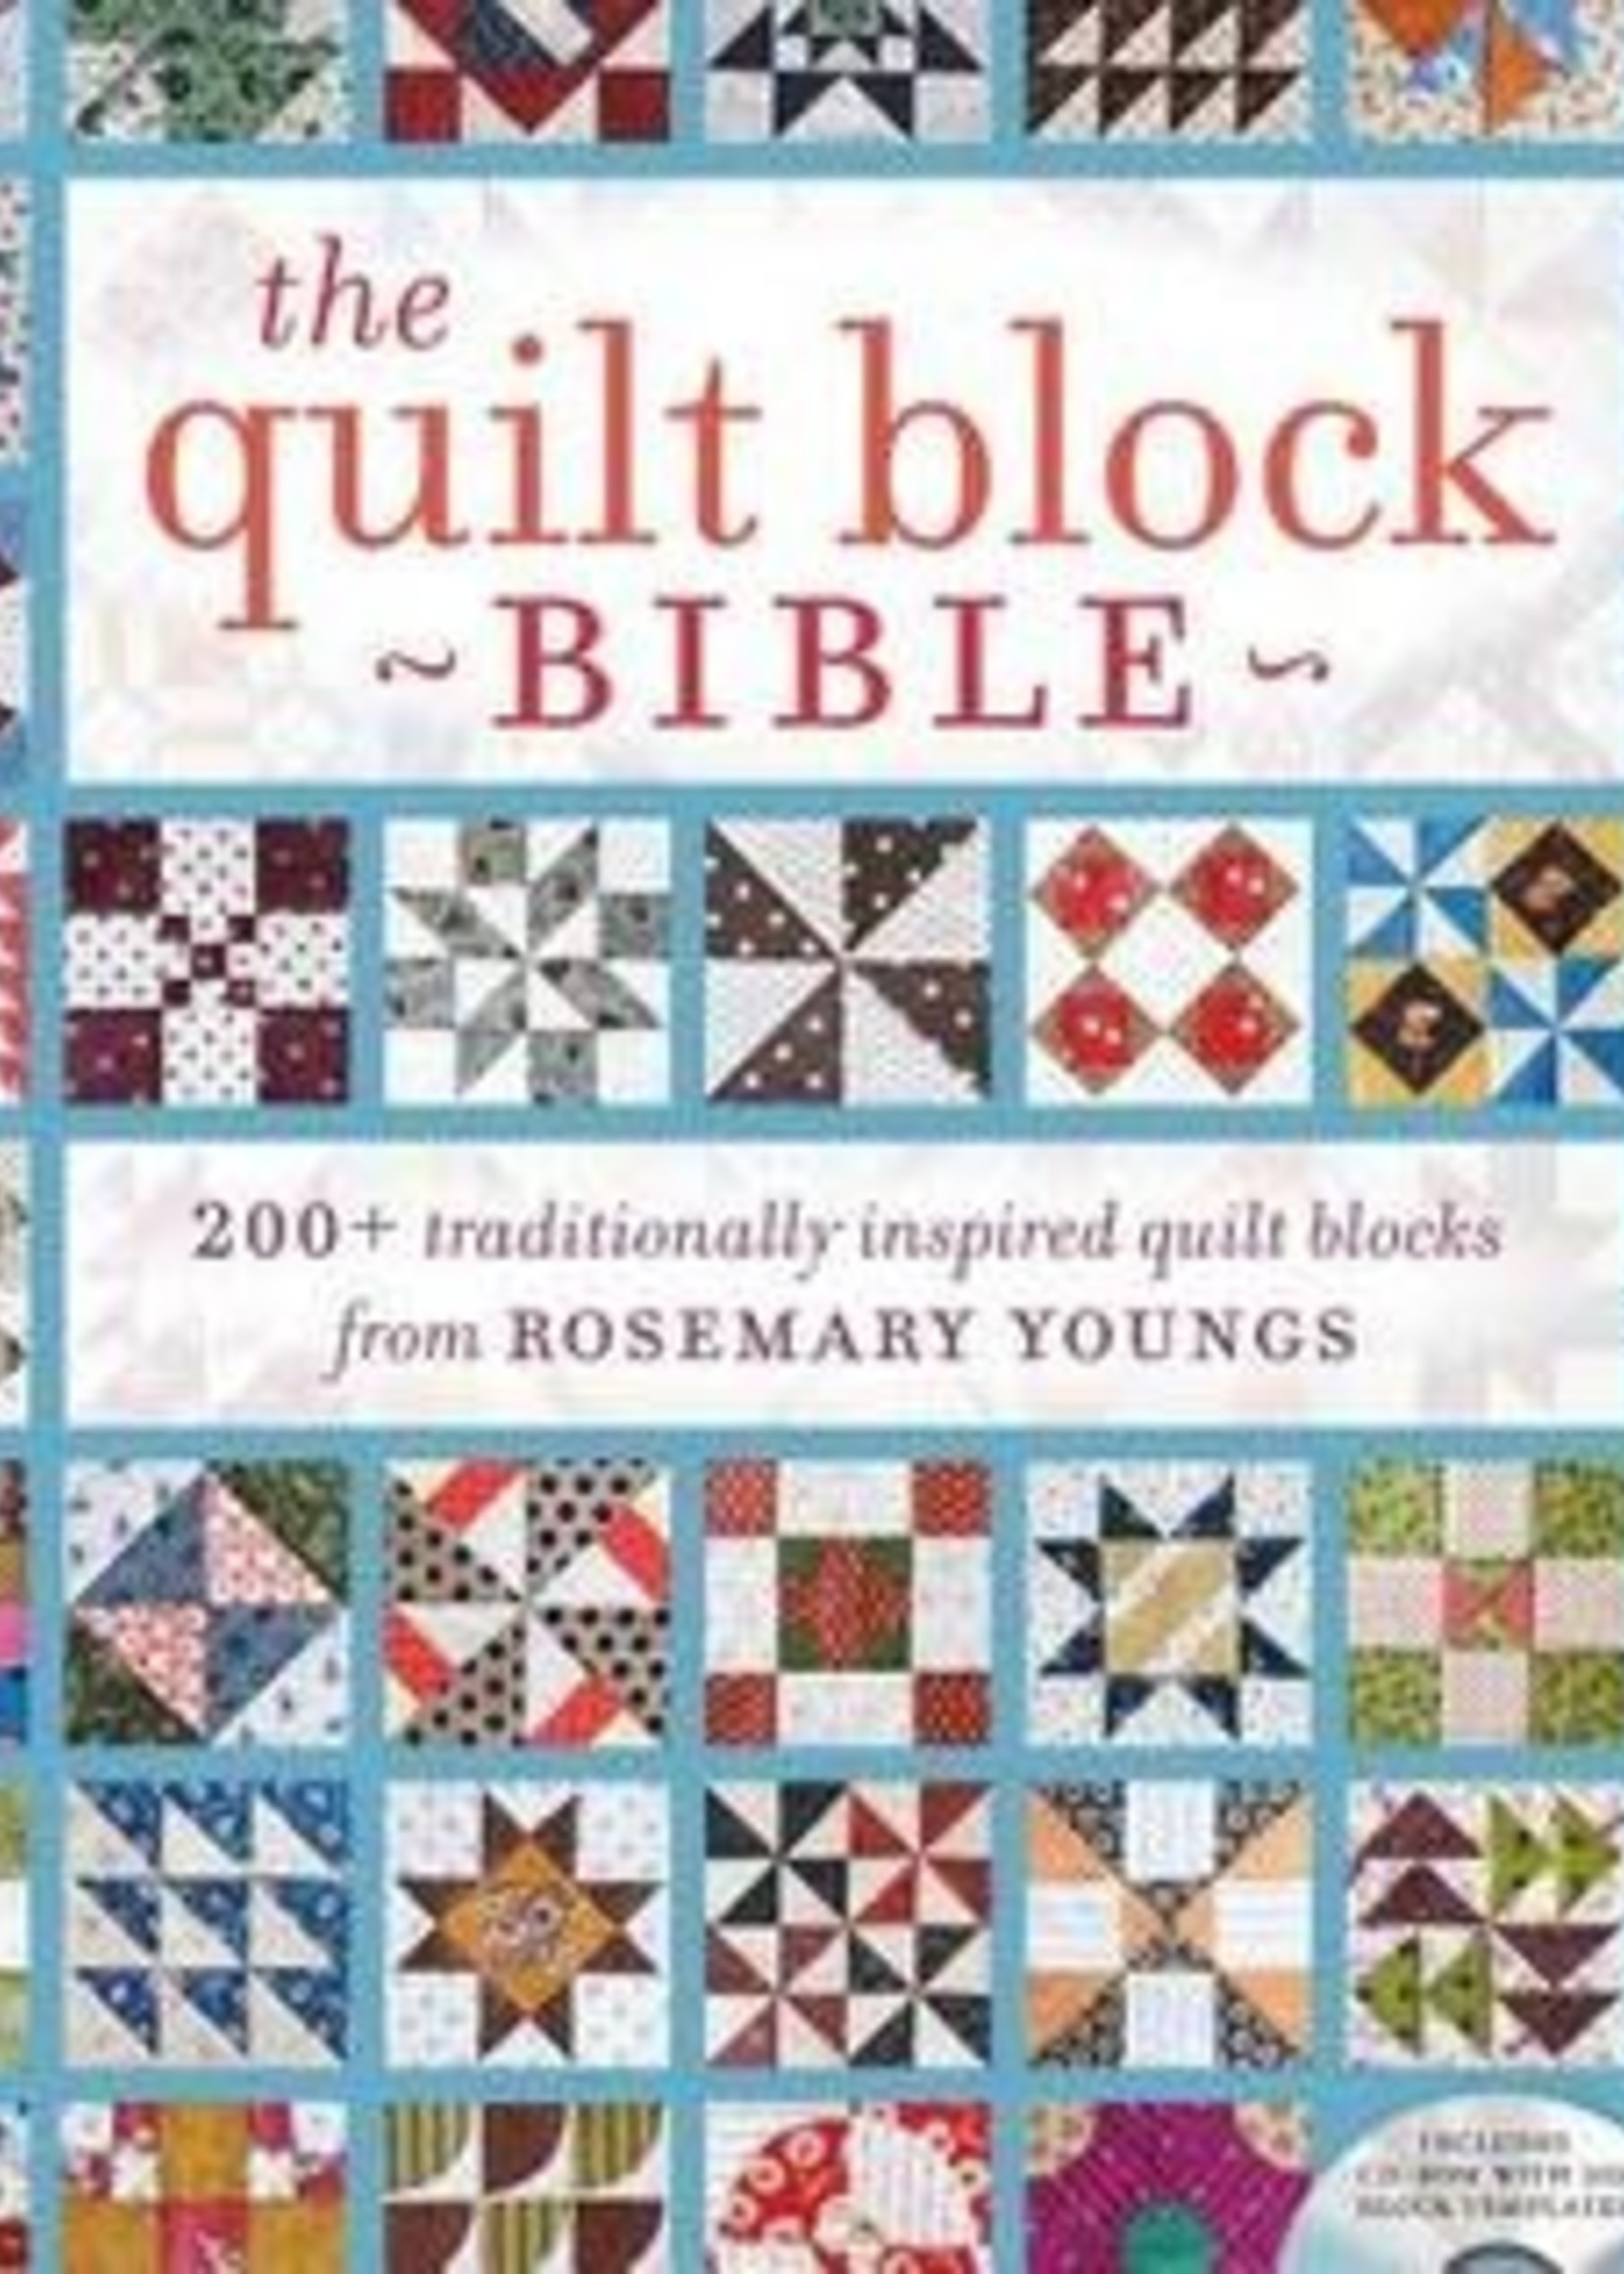 The Quilt Block Bible: 200+ Traditionally Inspired Quilt Blocks from Rosemary Youngs by Rosemary Youngs